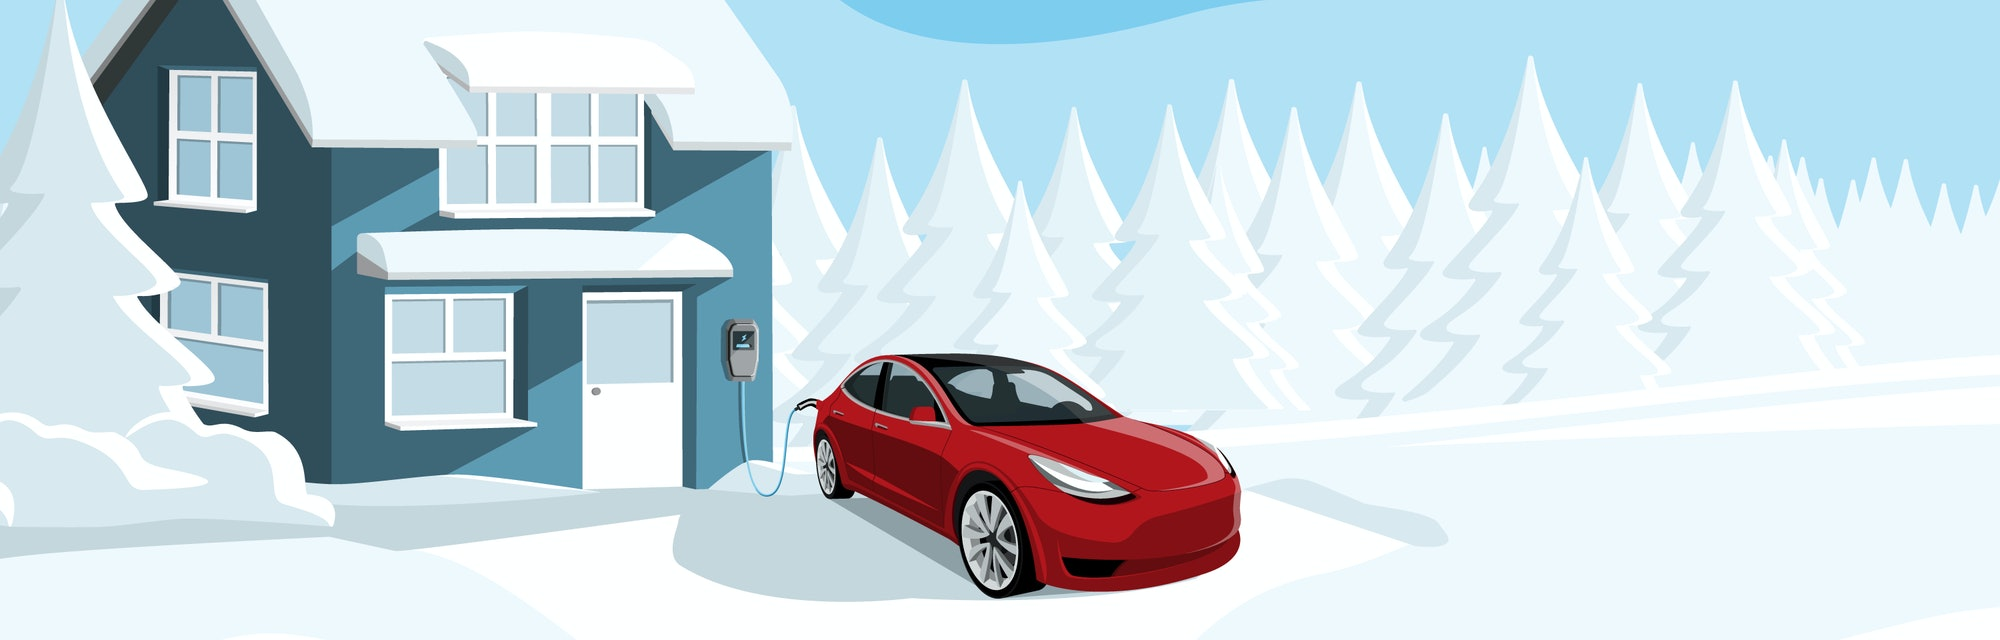 Electric car with a connected charging cable near a winter house. Vector illustration